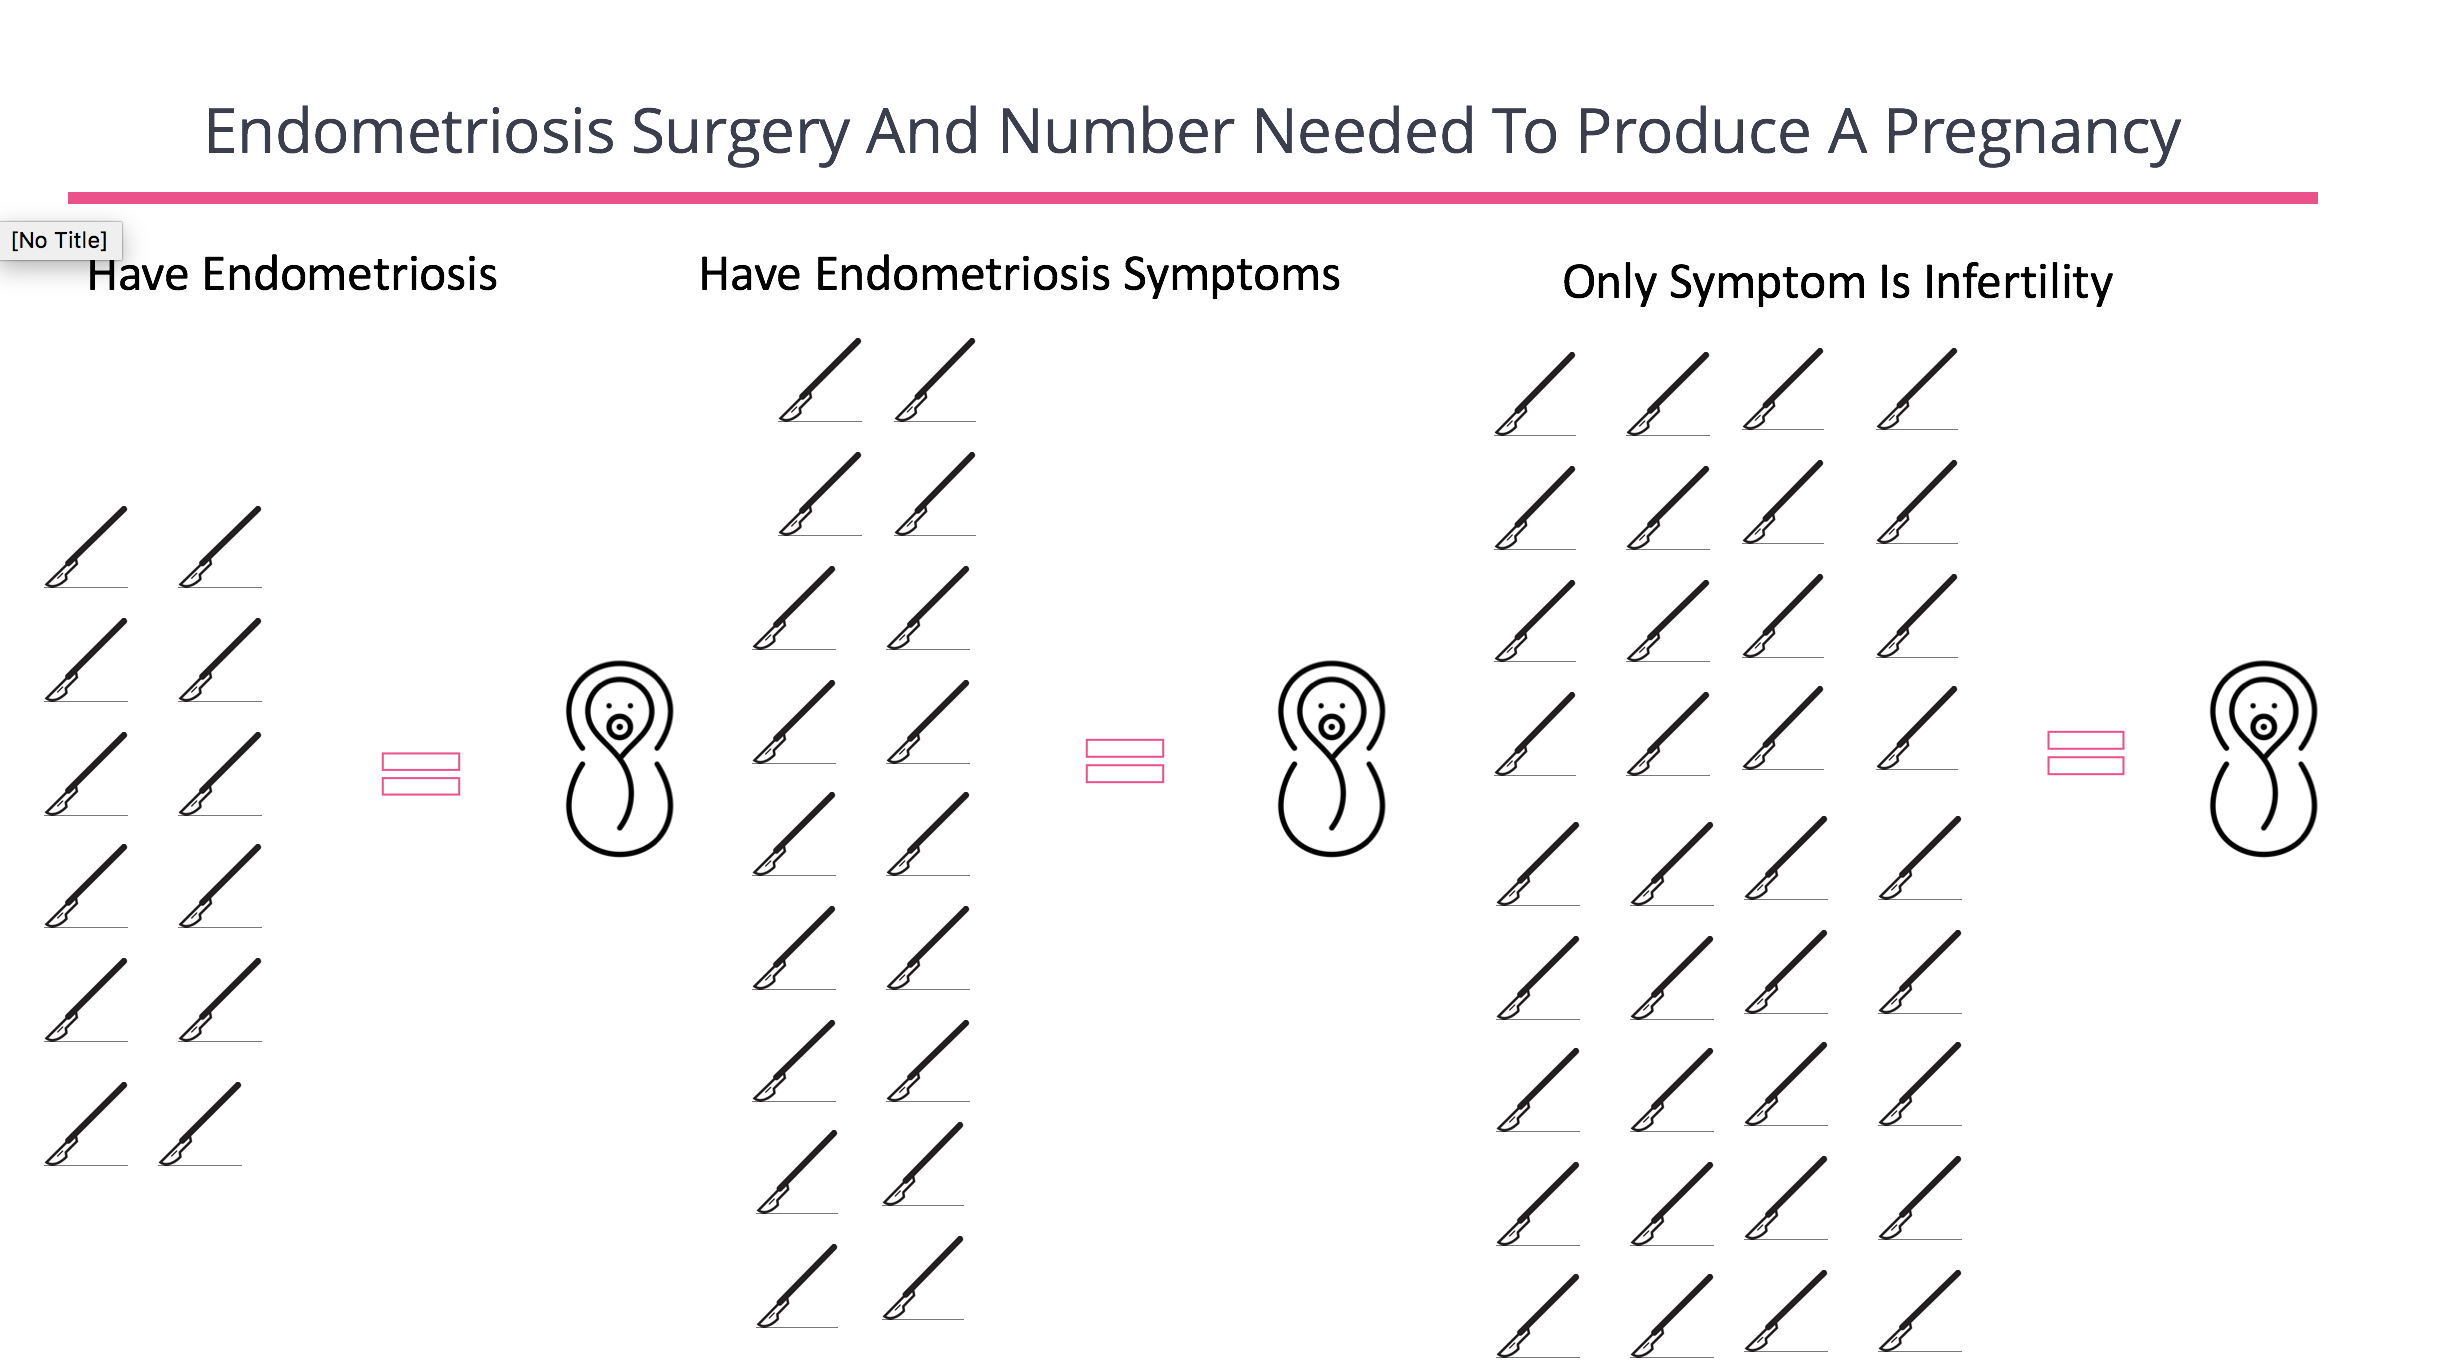 Endometriosis Surgery and Number Needed to produce a pregnancy